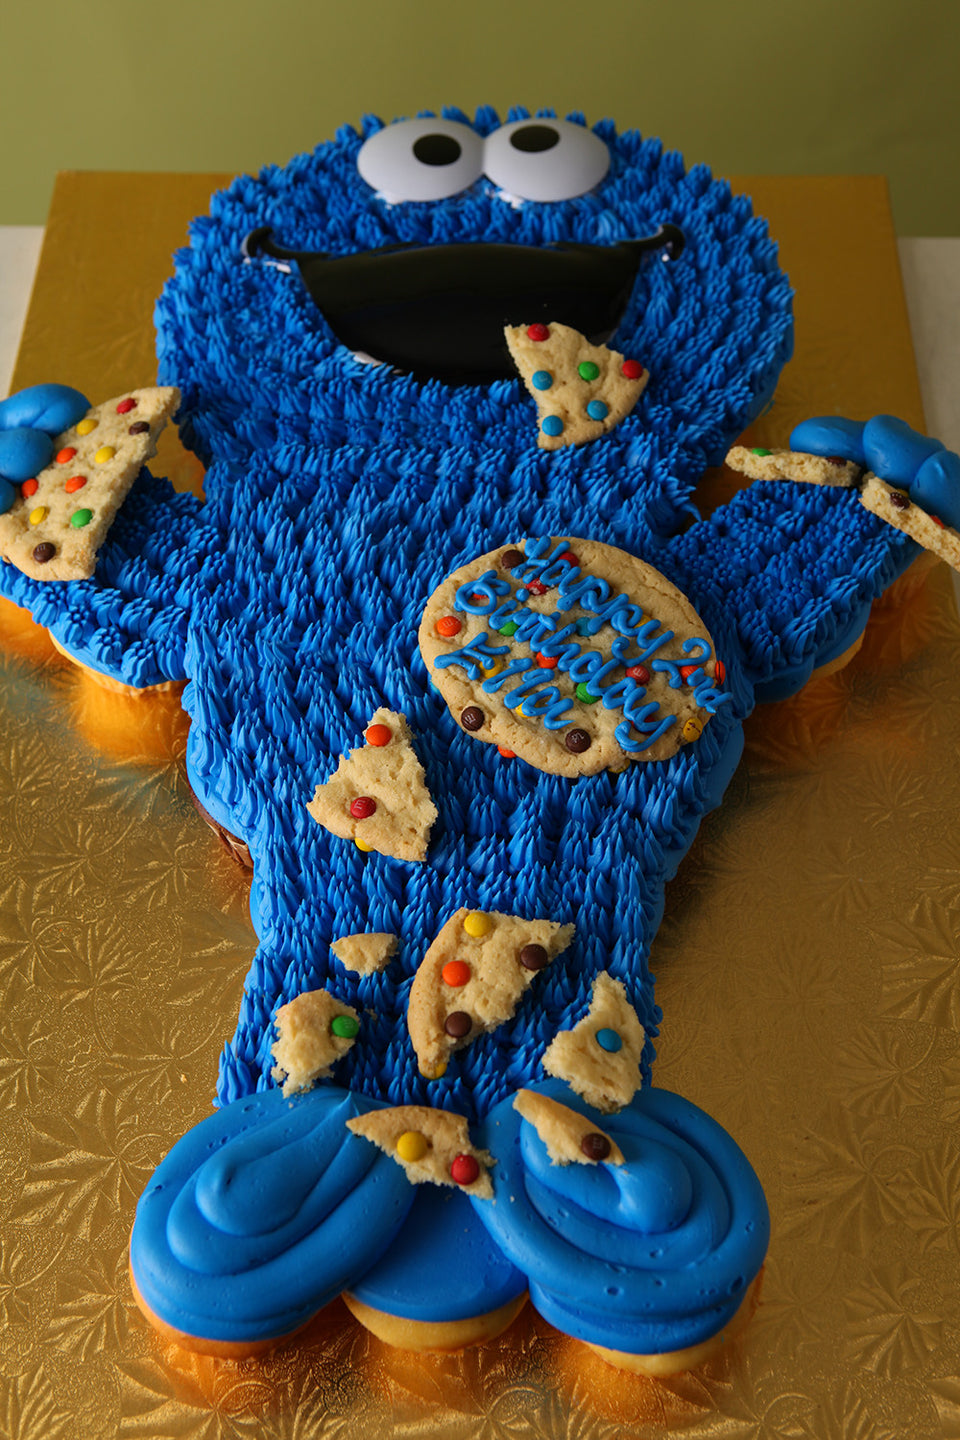 collections/cookie_monster_cupcake_1.jpg